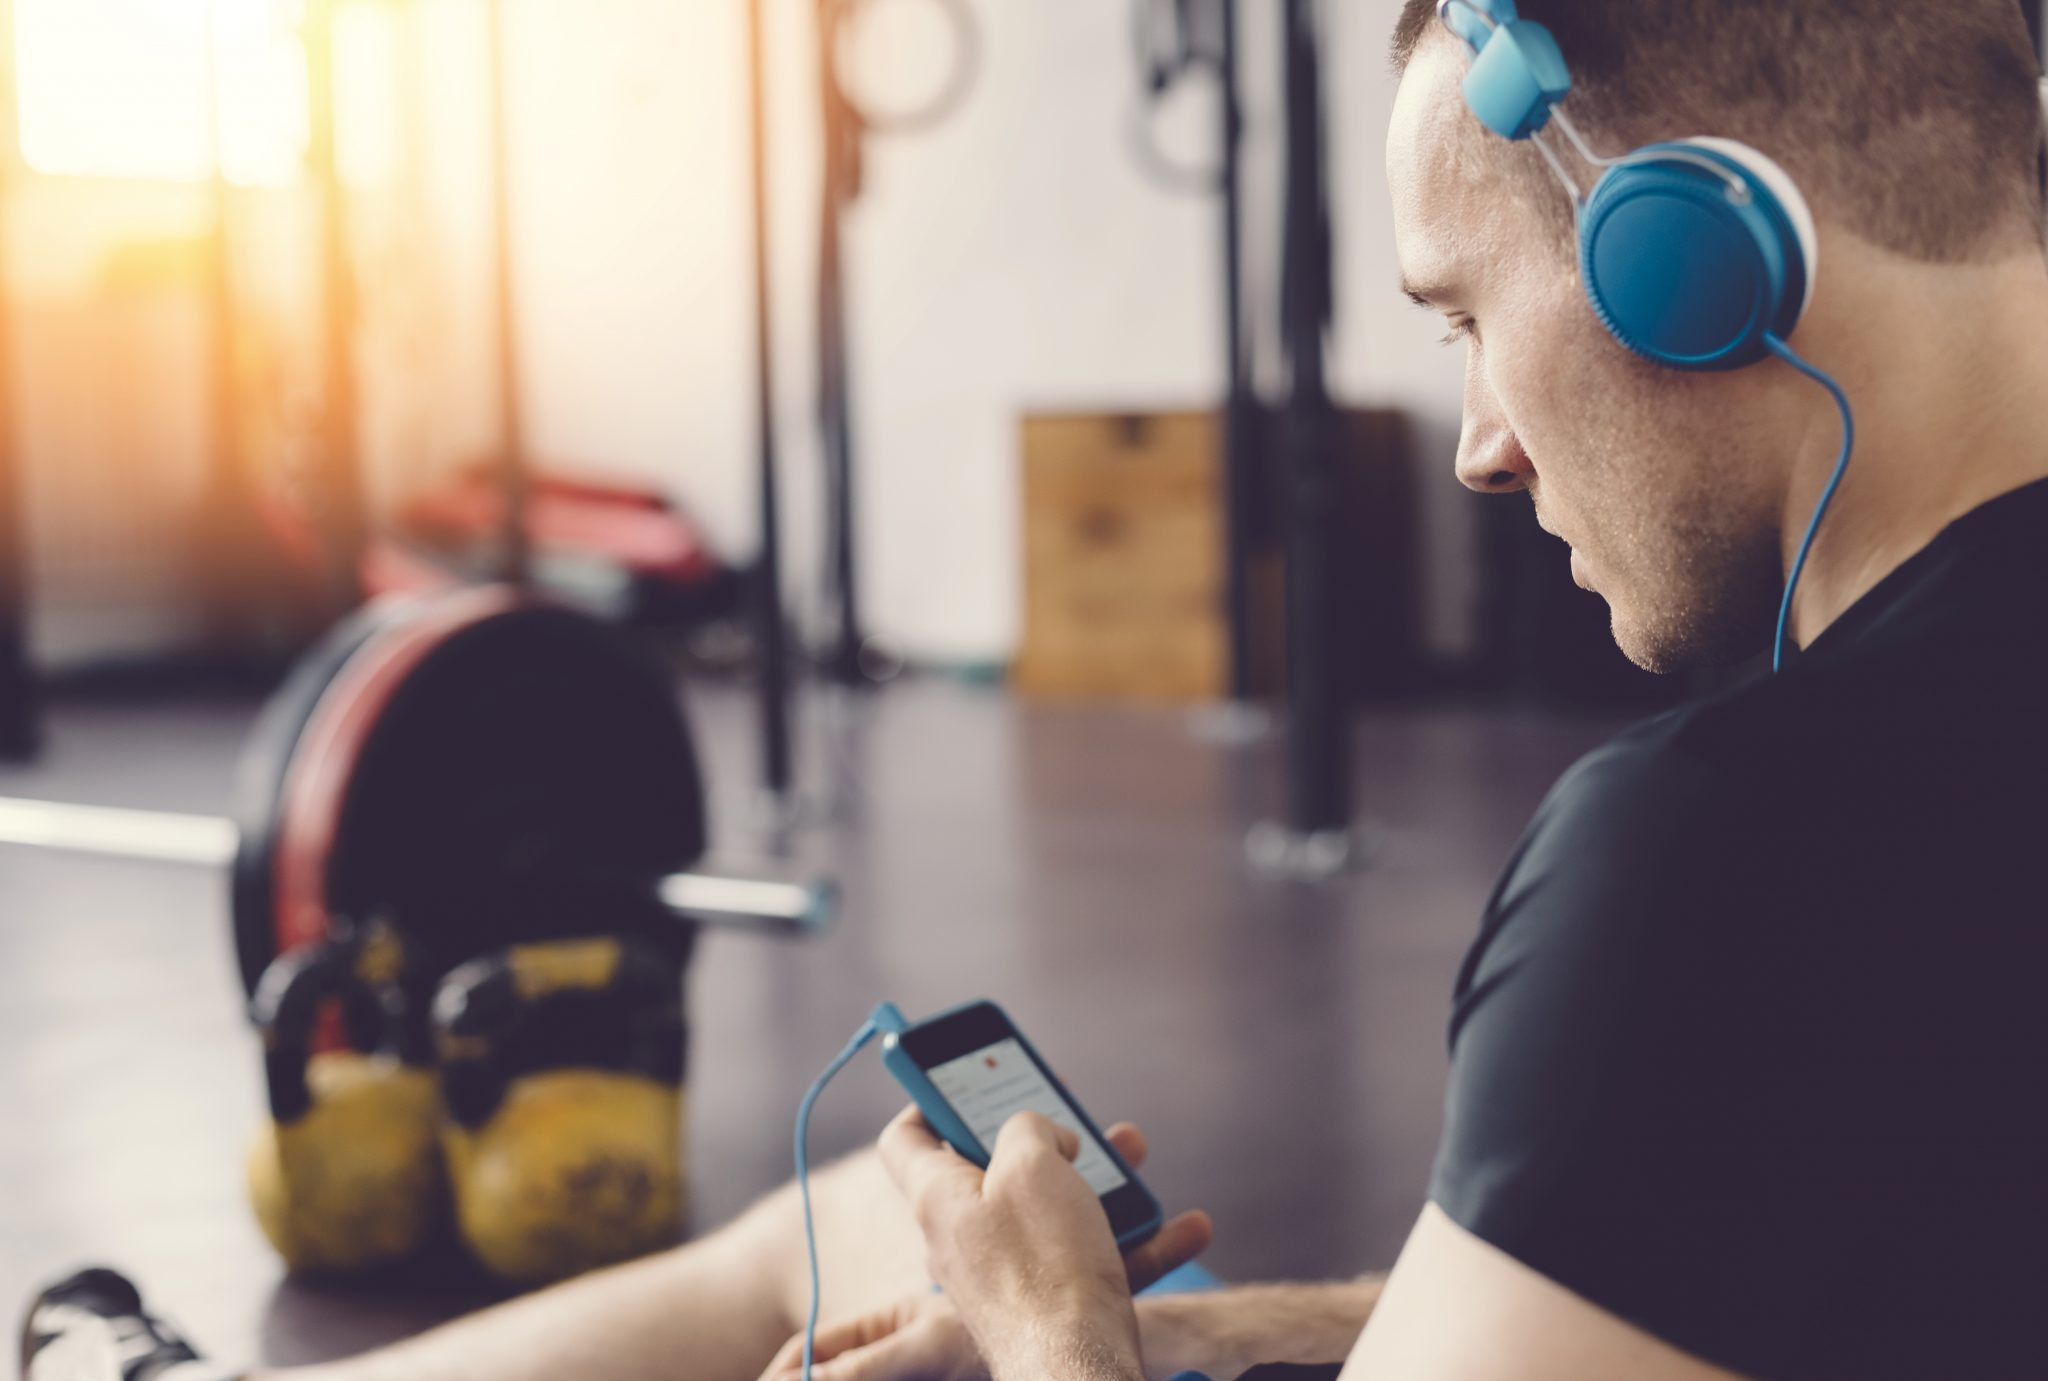 Not getting results in the gym? It could be the music you're